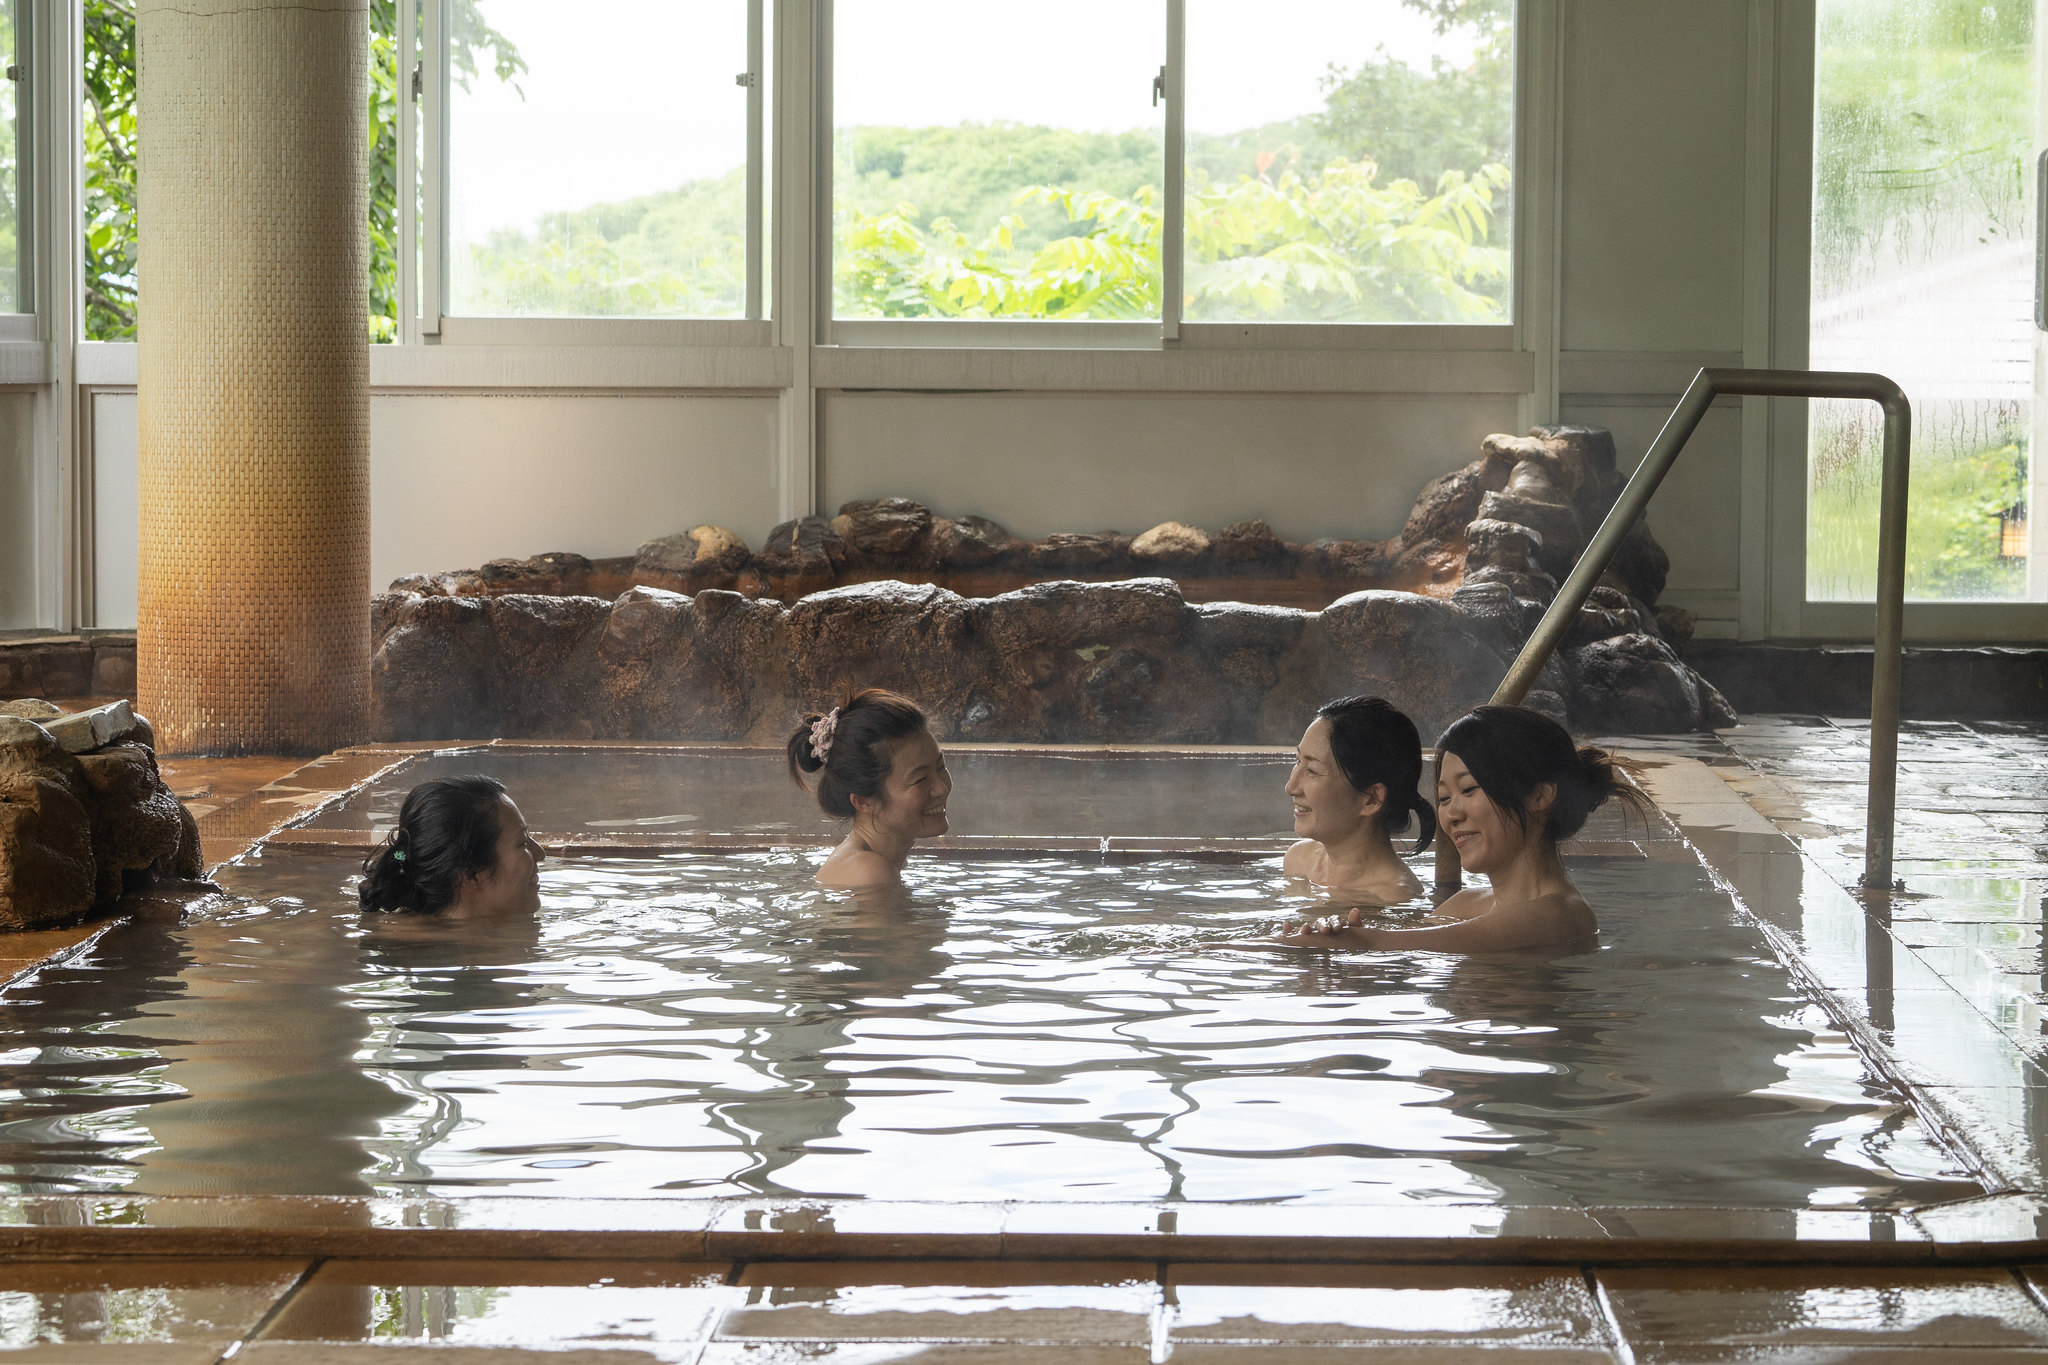 A group of 4 women chatting in an indoor onsen at Niseko Grand Hotel in Japan.